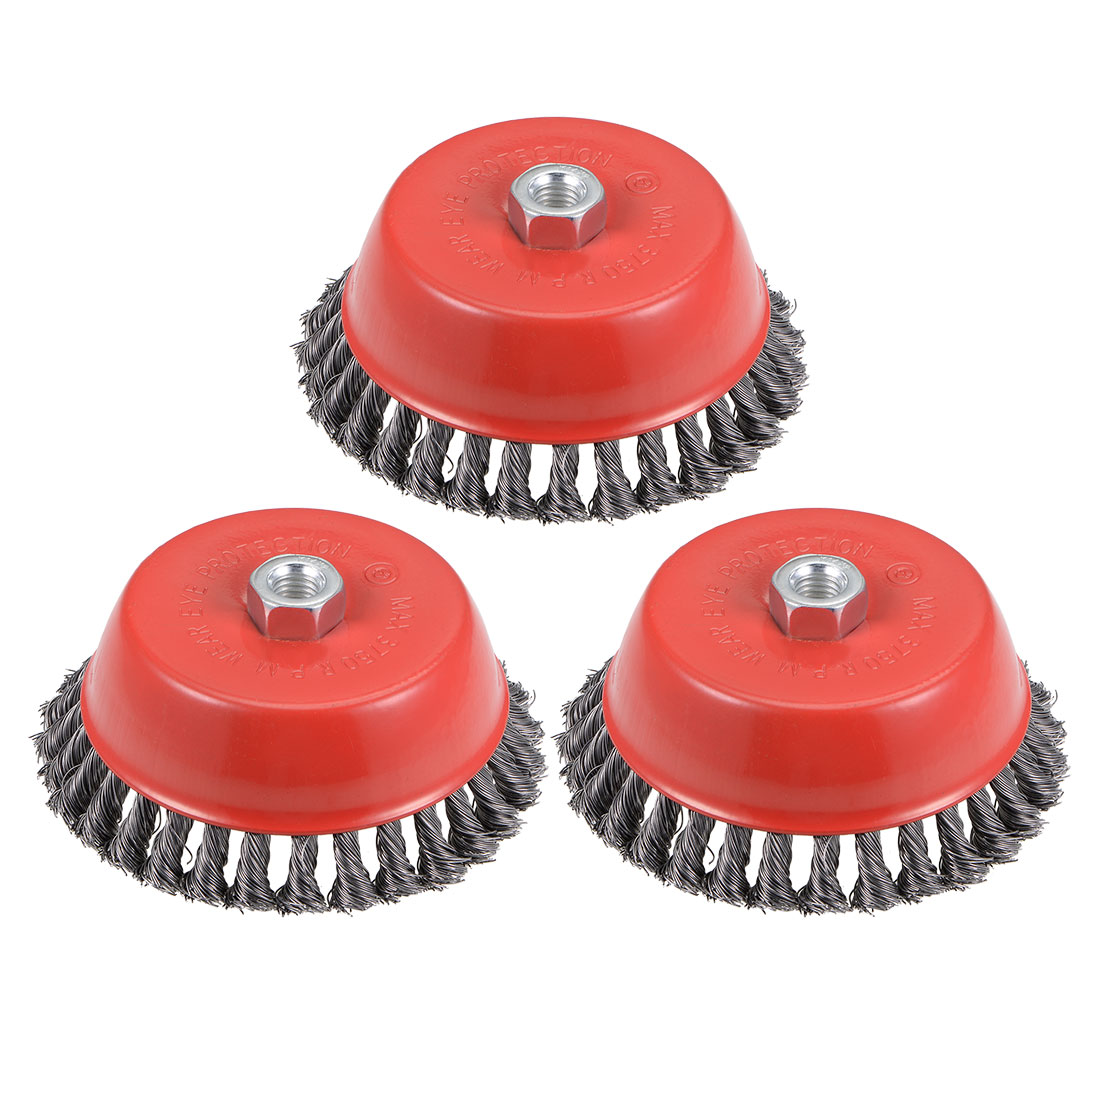 6-Inch Wire Cup Brush Twist Knotted Crimped Steel with M14 Threaded Hole 3 Pcs